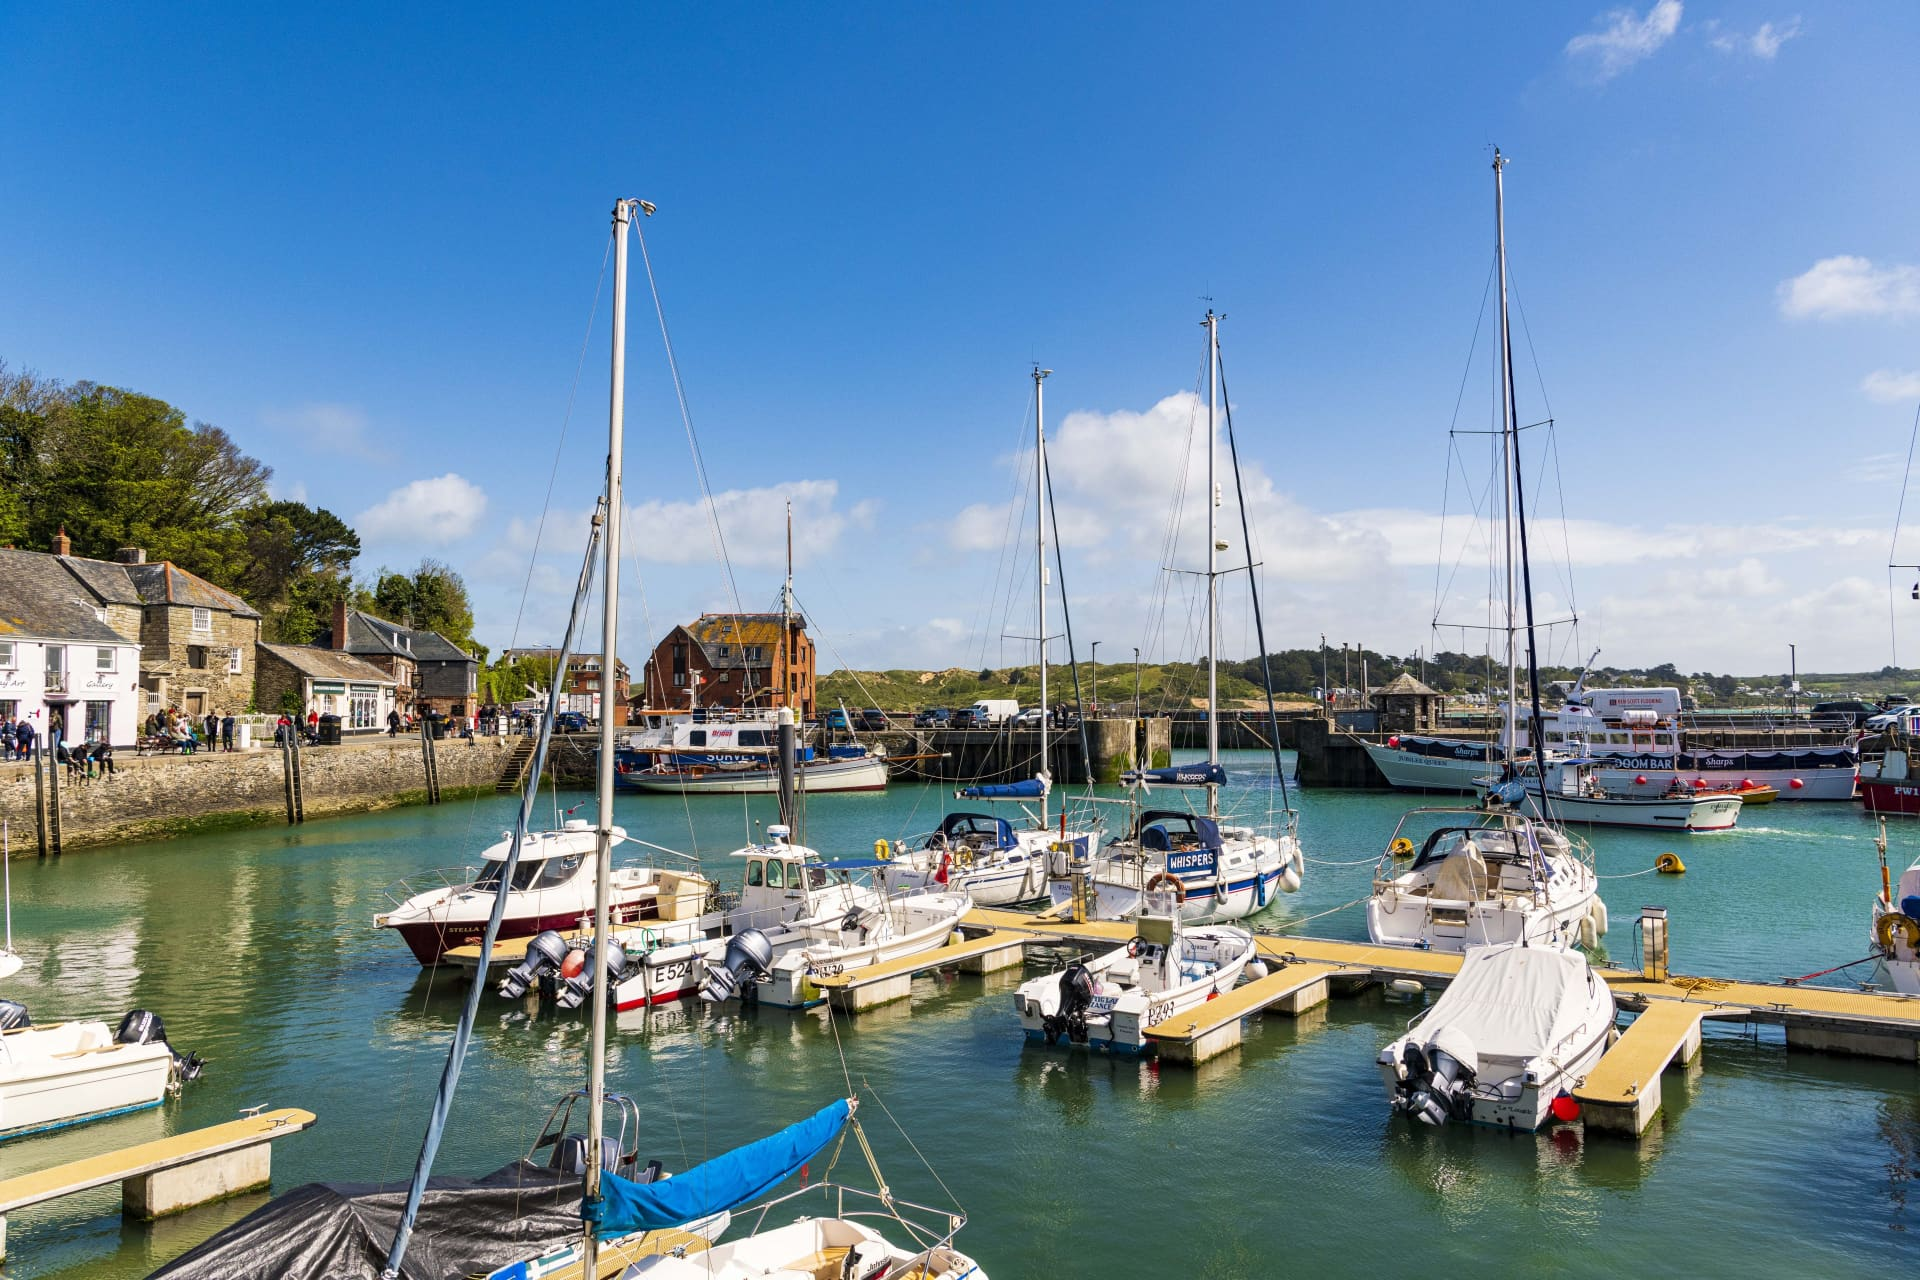 Padstow Harbour, where Rick Stein has many establishments in the town that cater for all tastes.